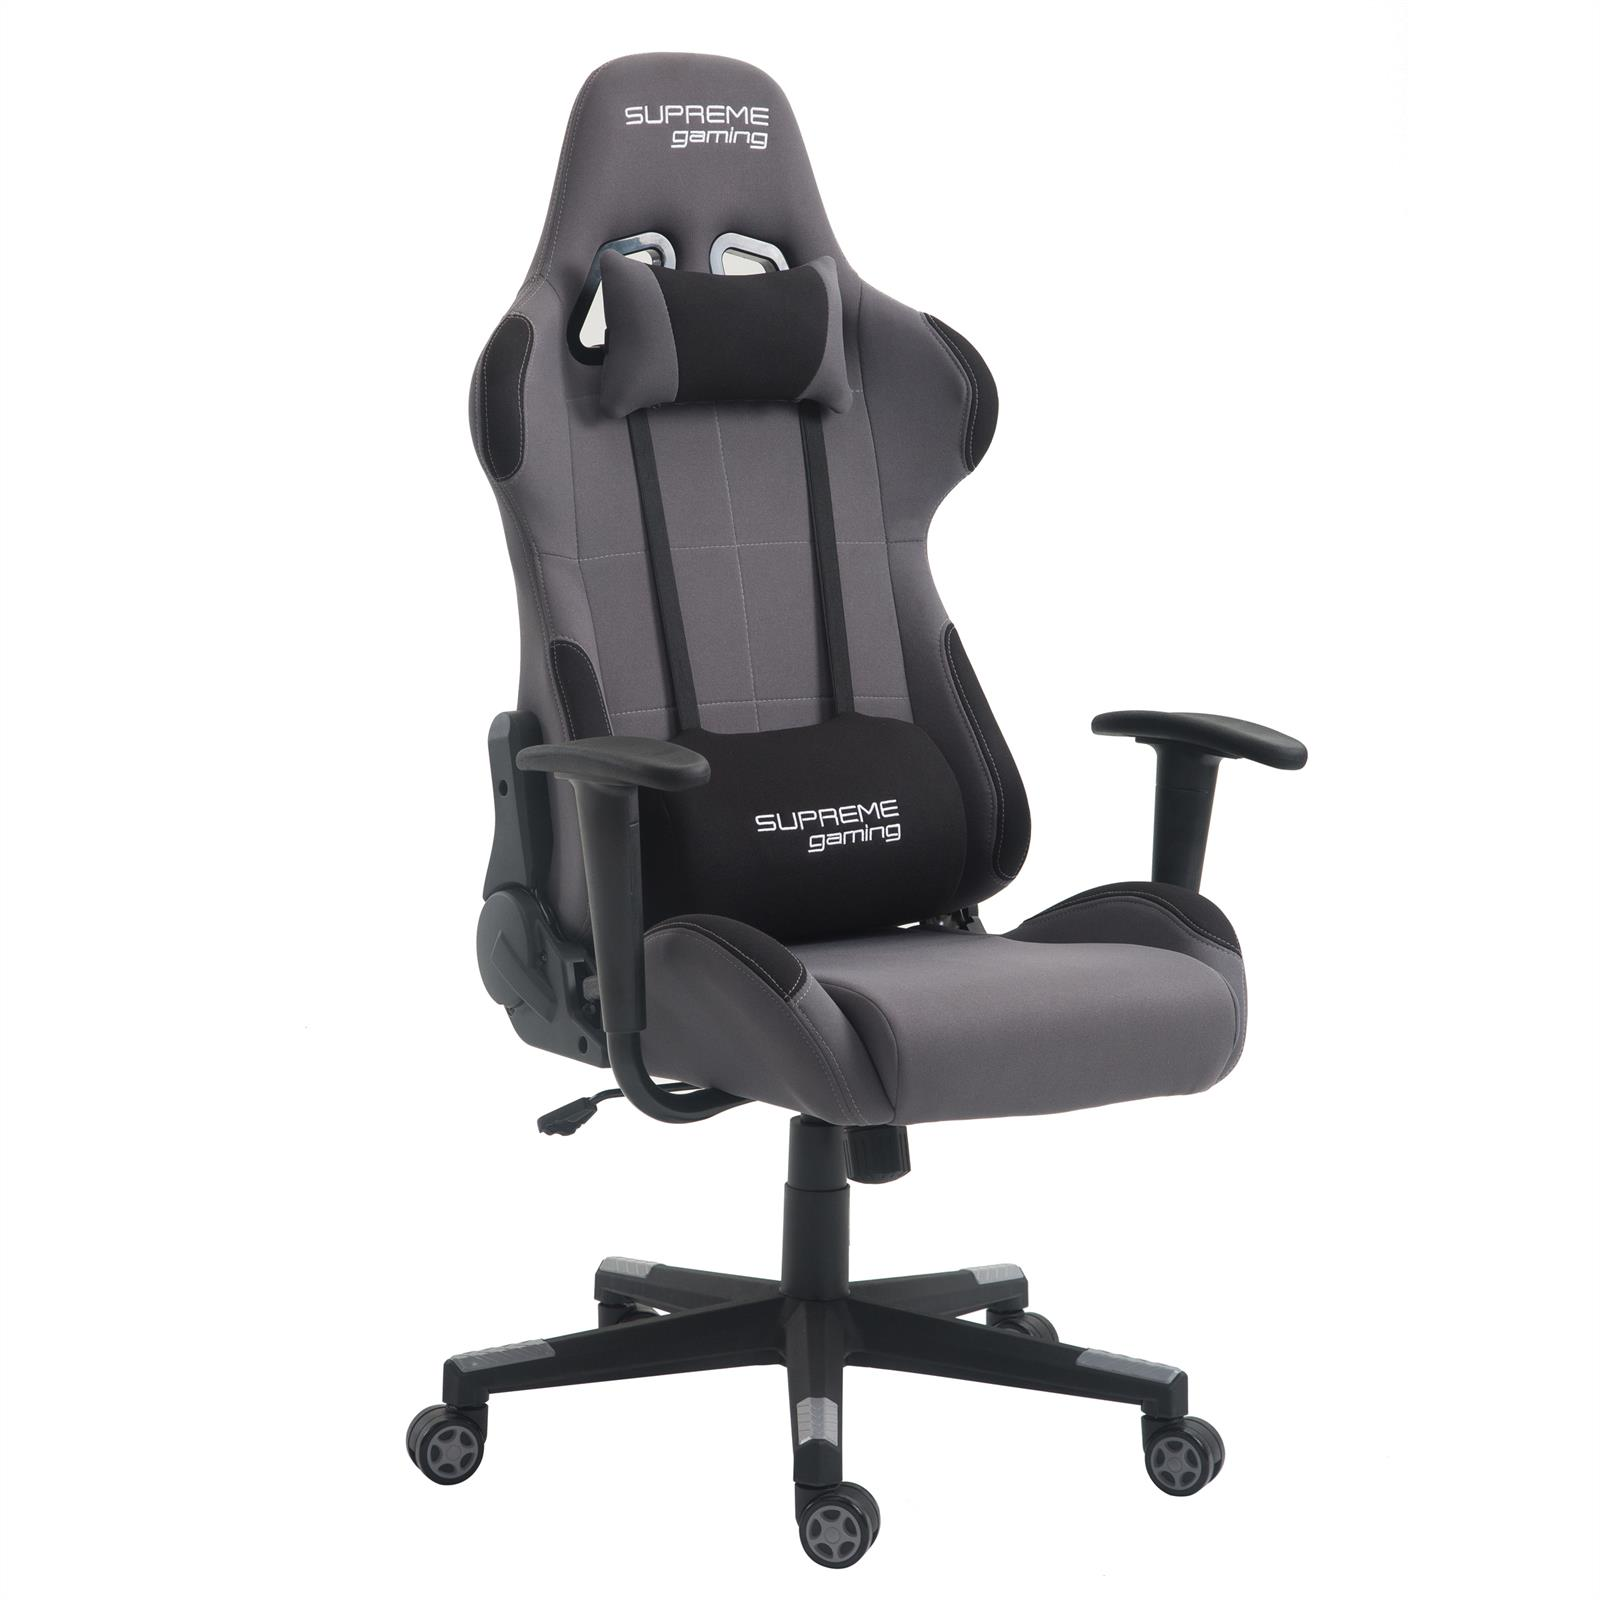 Fauteuils Gamer Chaise De Bureau Gaming Swift Fauteuil Gamer Chair Siège